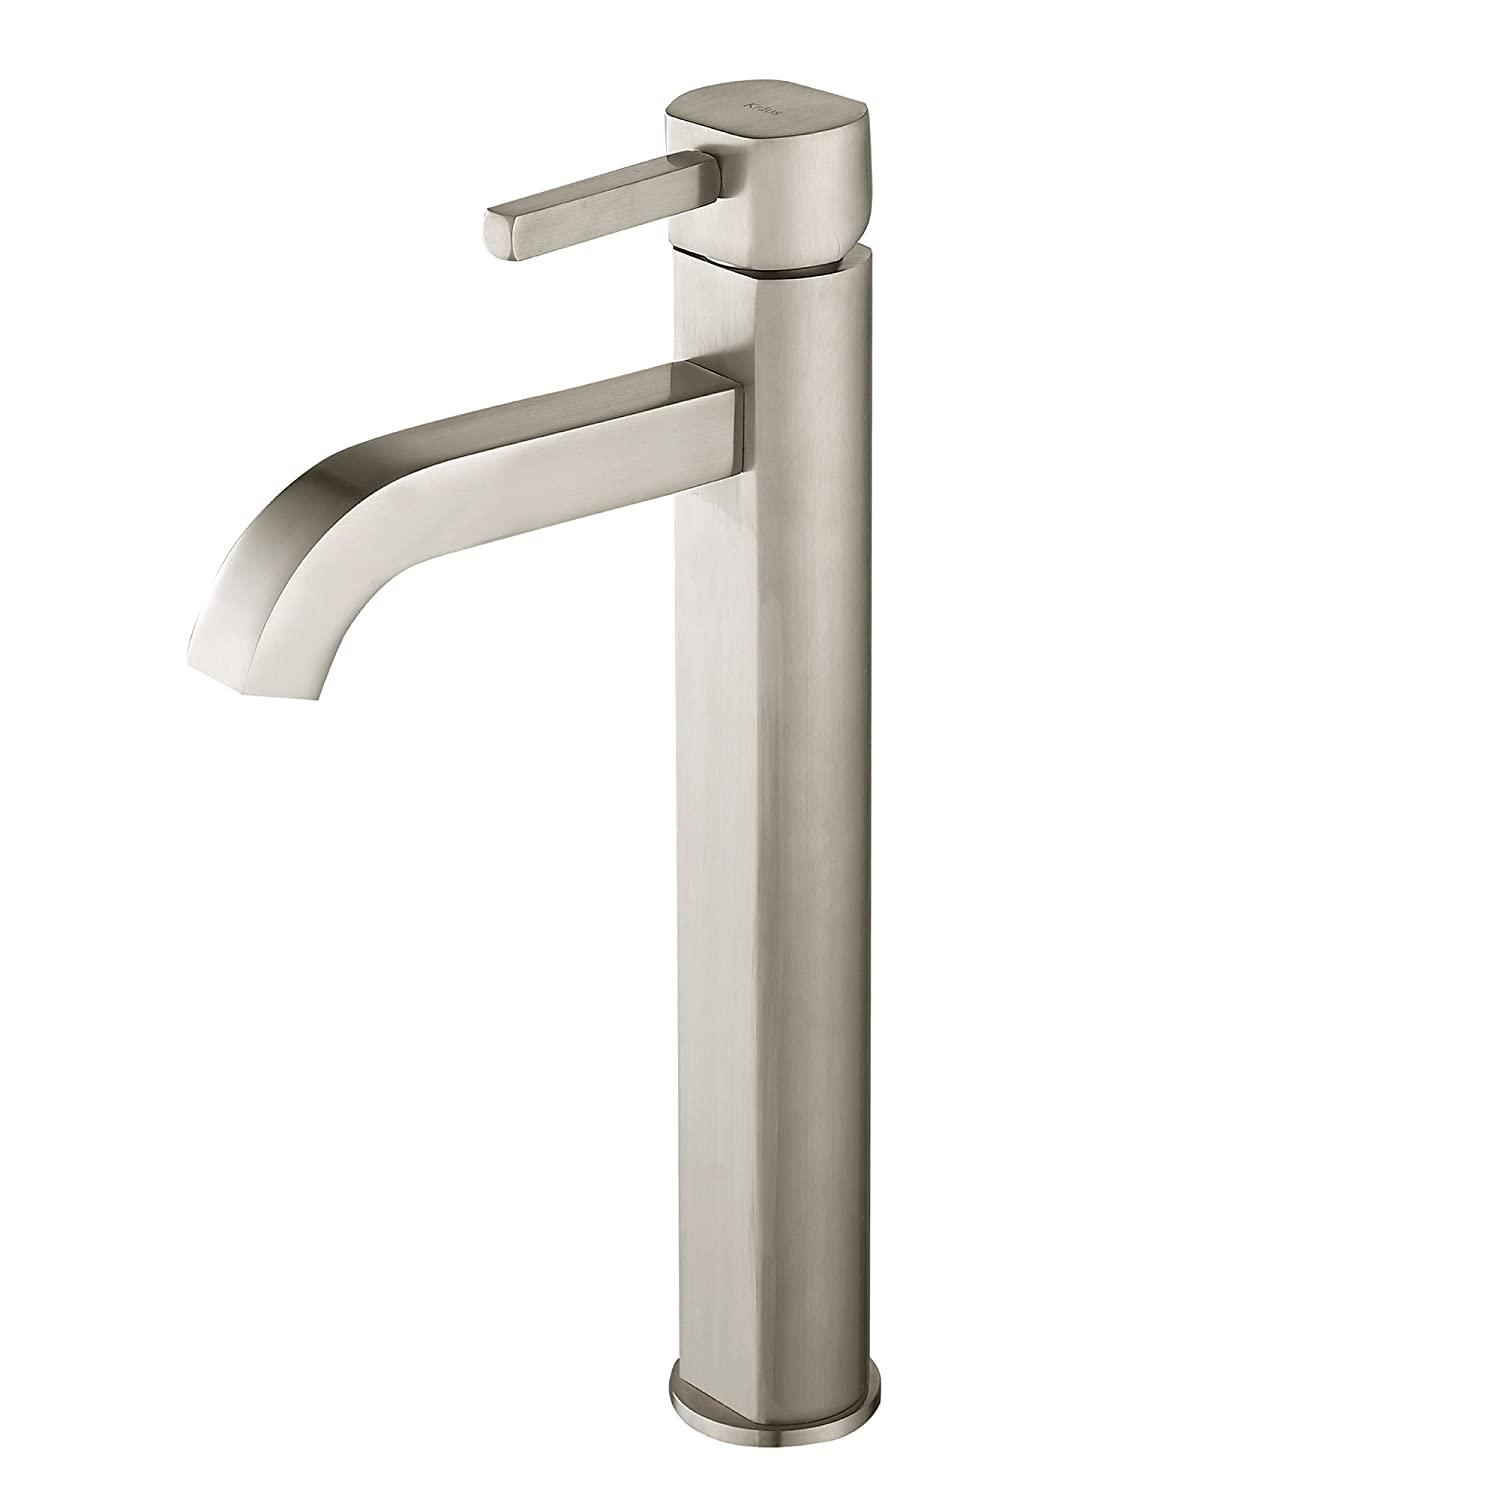 Captivating Kraus FVS 1007SN Ramus Single Lever Vessel Bathroom Faucet Satin Nickel    Touch On Bathroom Sink Faucets   Amazon.com Part 5